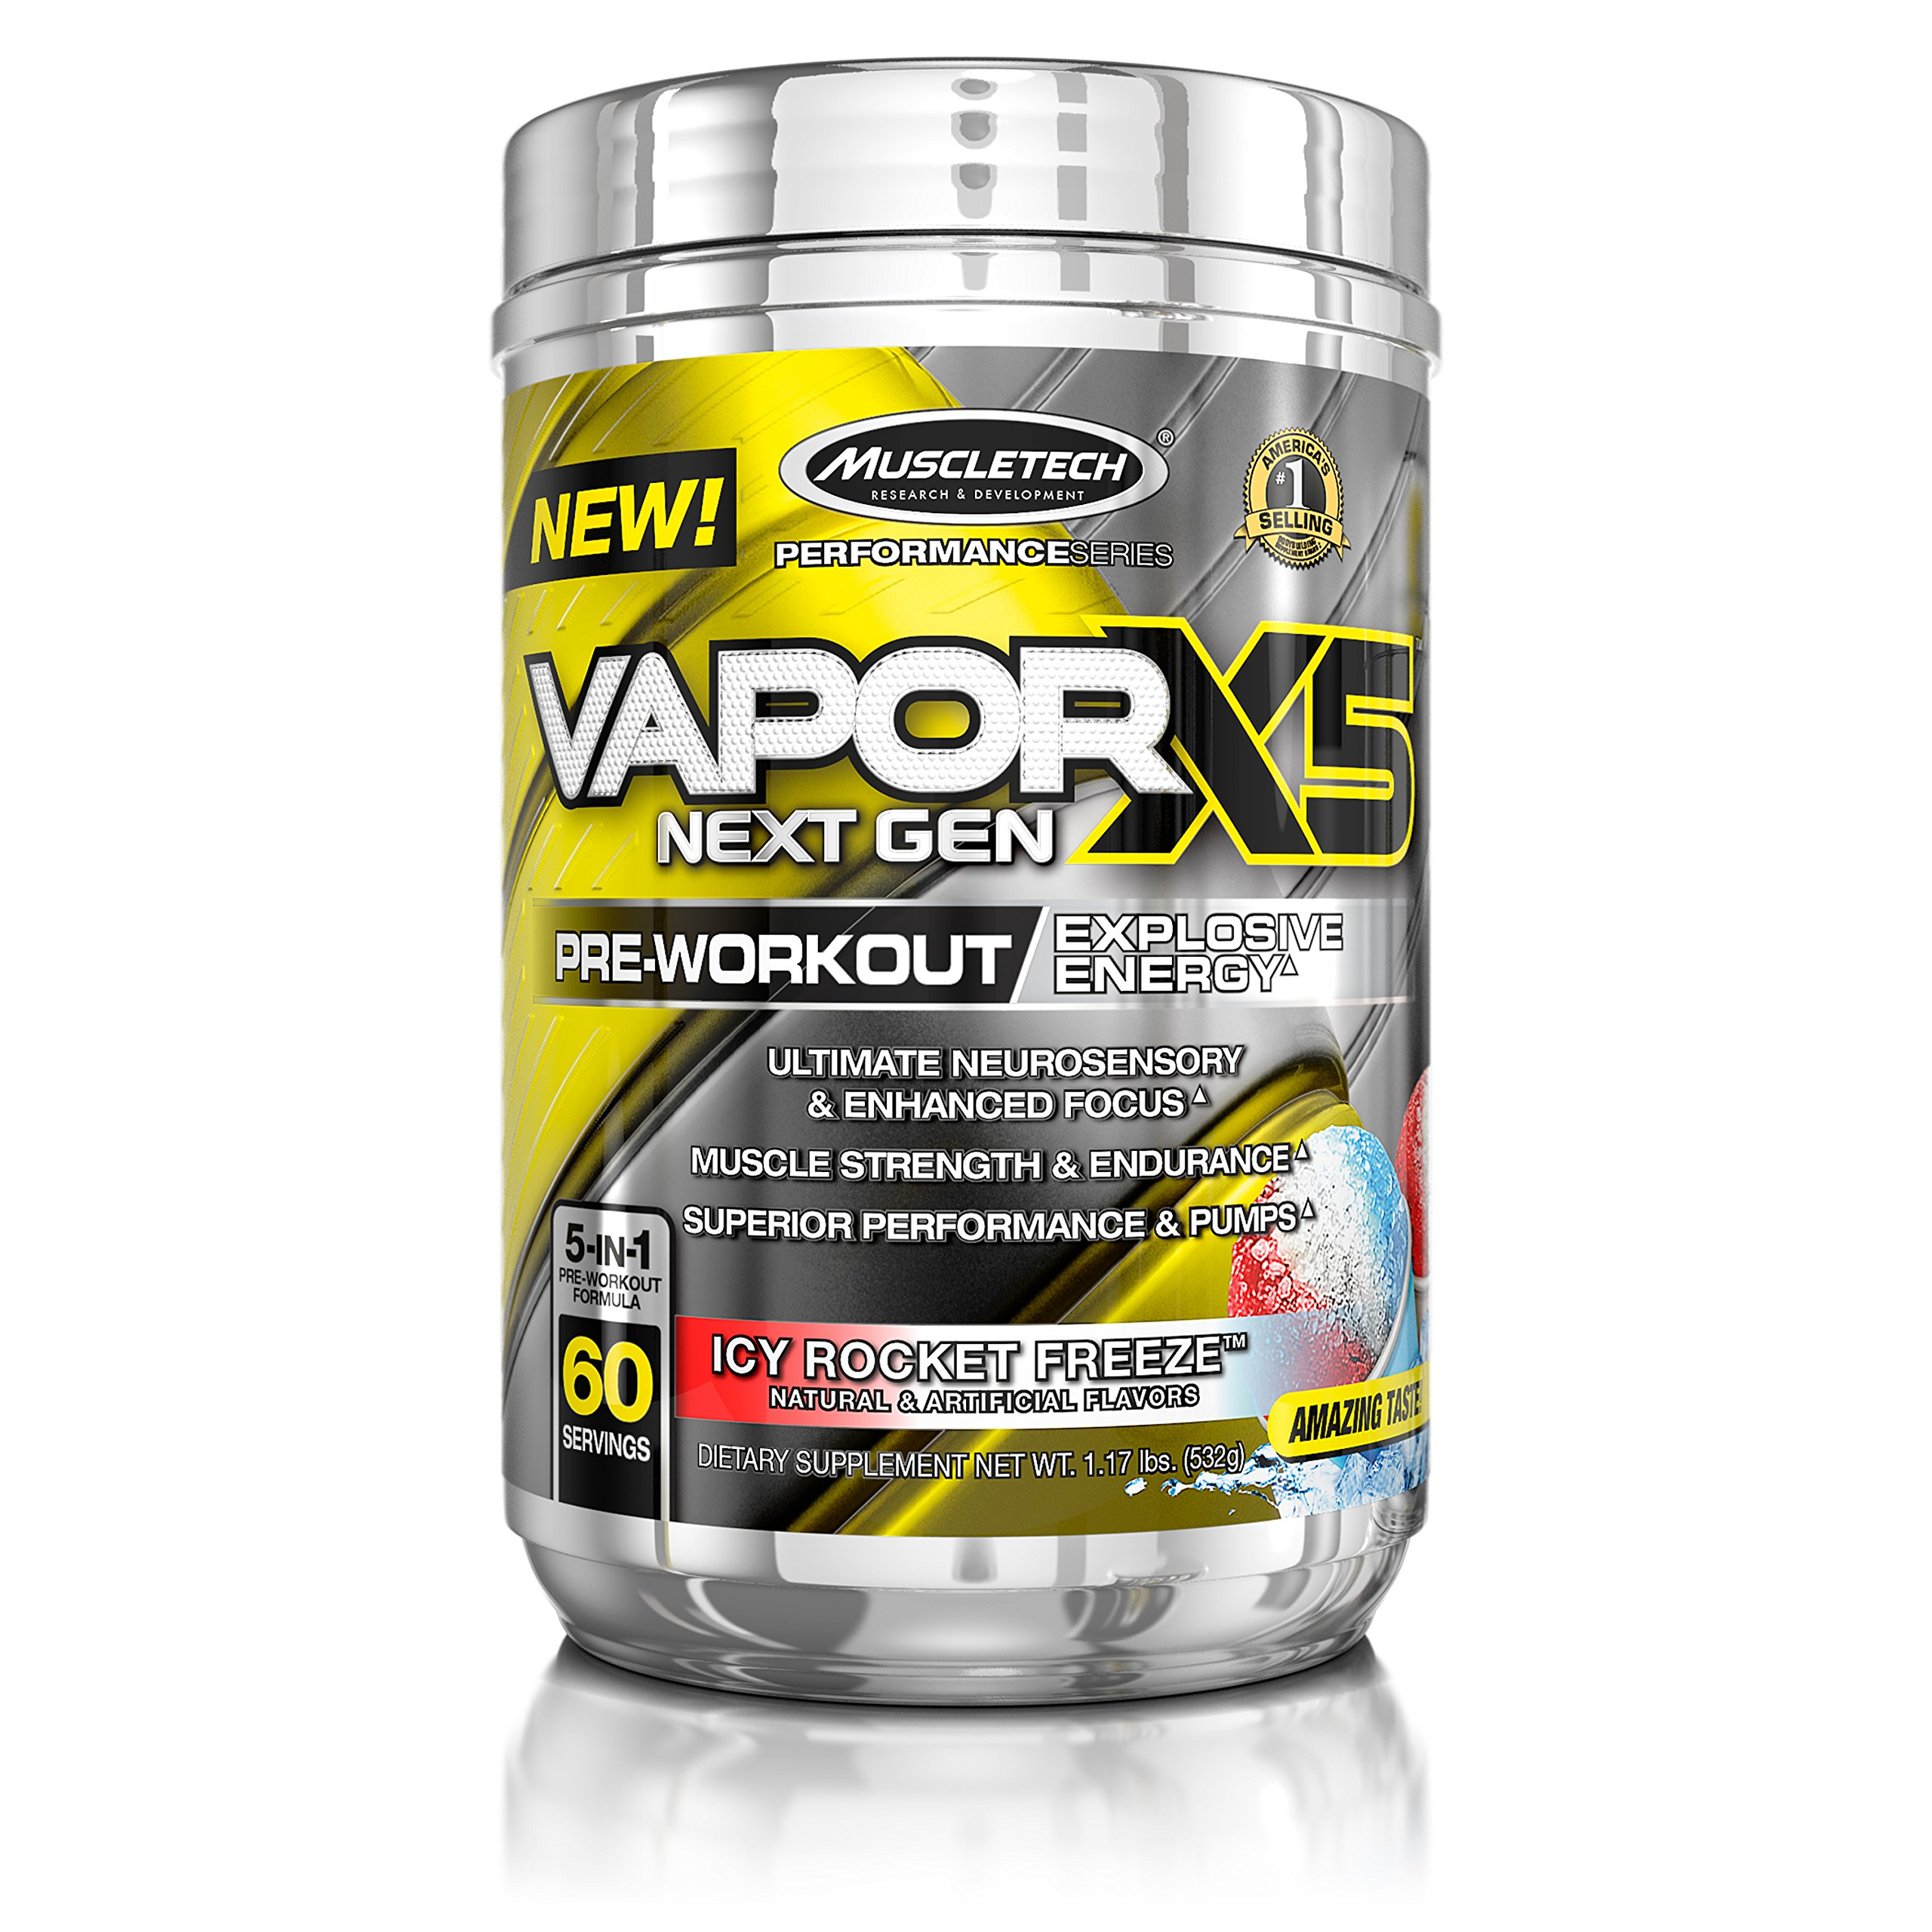 MuscleTech Performance Series Vapor X5 Next Gen Pre-Workout Powder 1.17 lbs, 60 servings